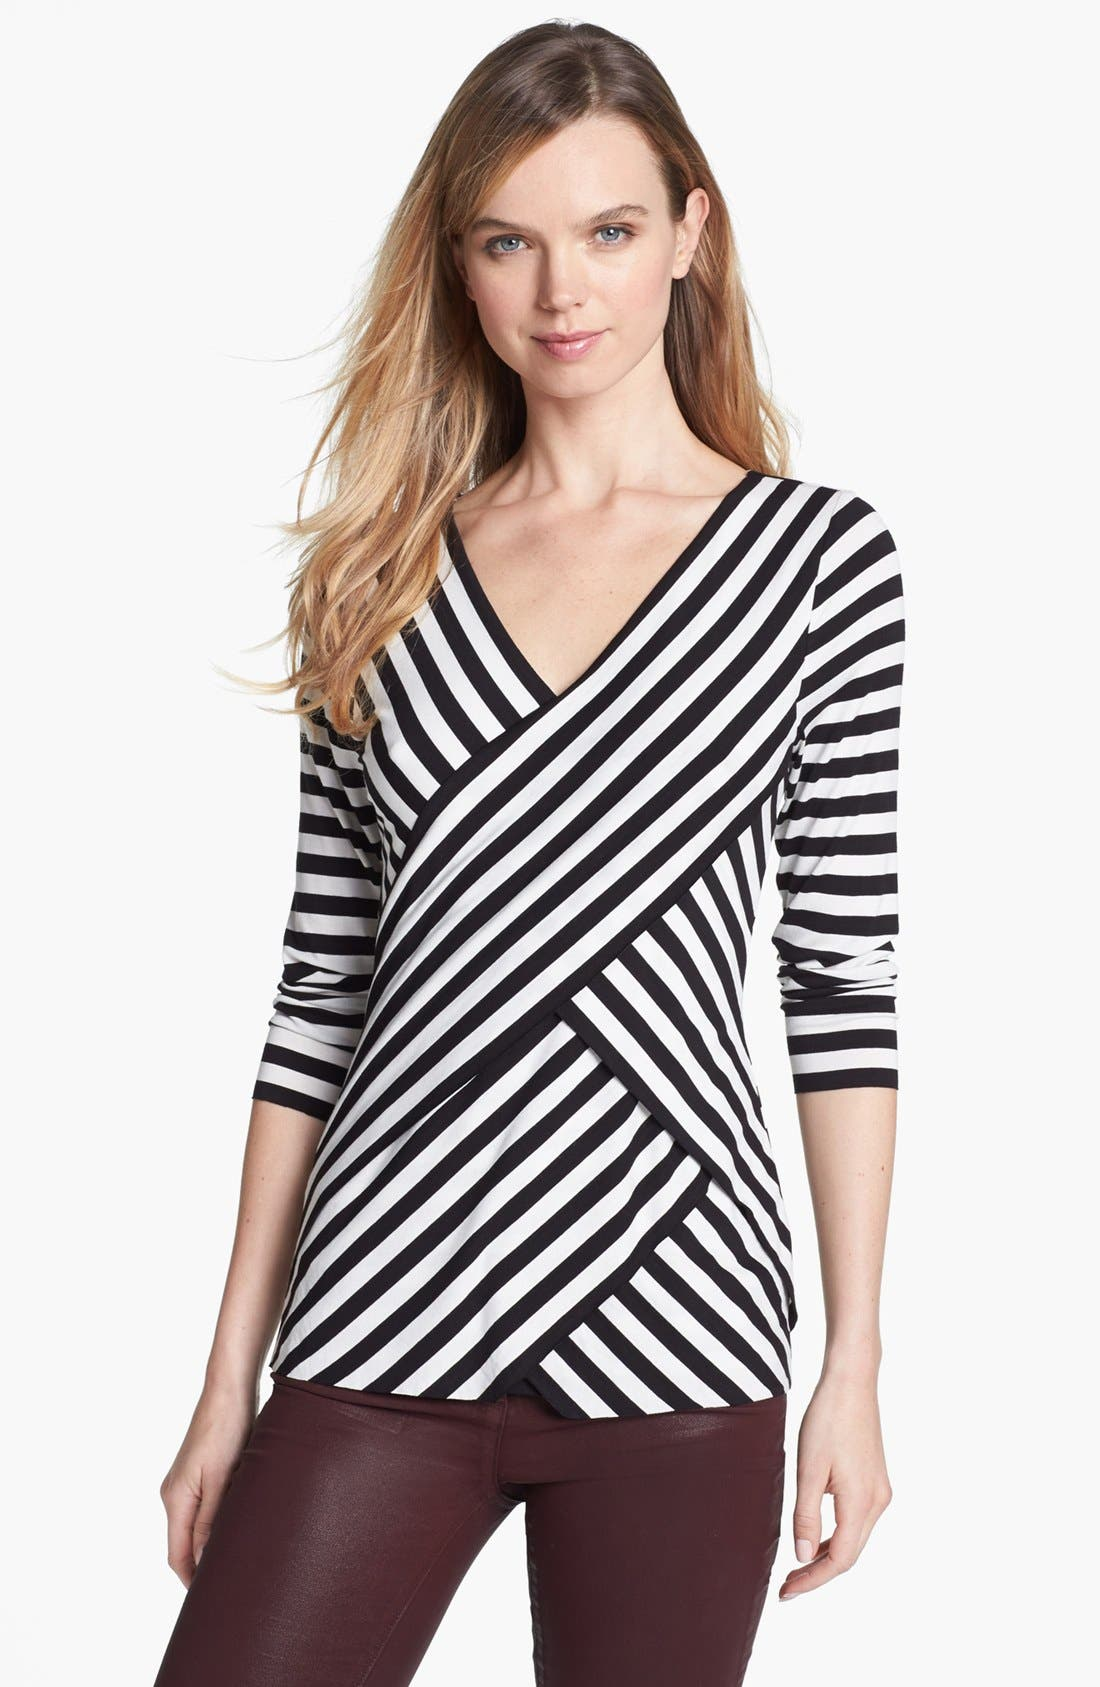 Alternate Image 1 Selected - Vince Camuto Tiered Stripe Top (Regular & Petite)